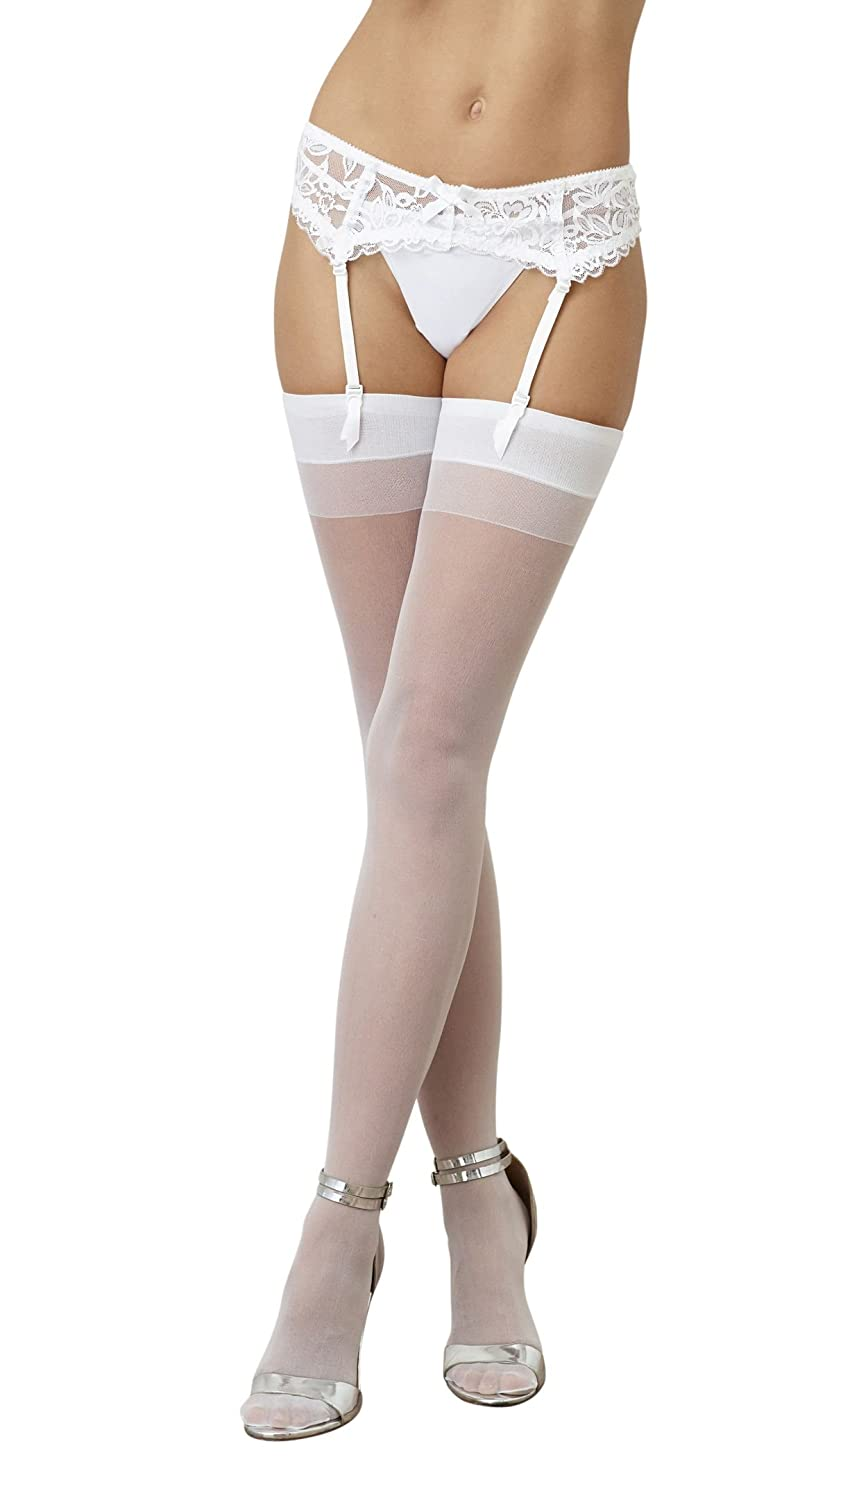 Dreamgirl Women's Thigh High with Back Seam Black One Size 0007-BLACK-O/S reikos_0016707967_029